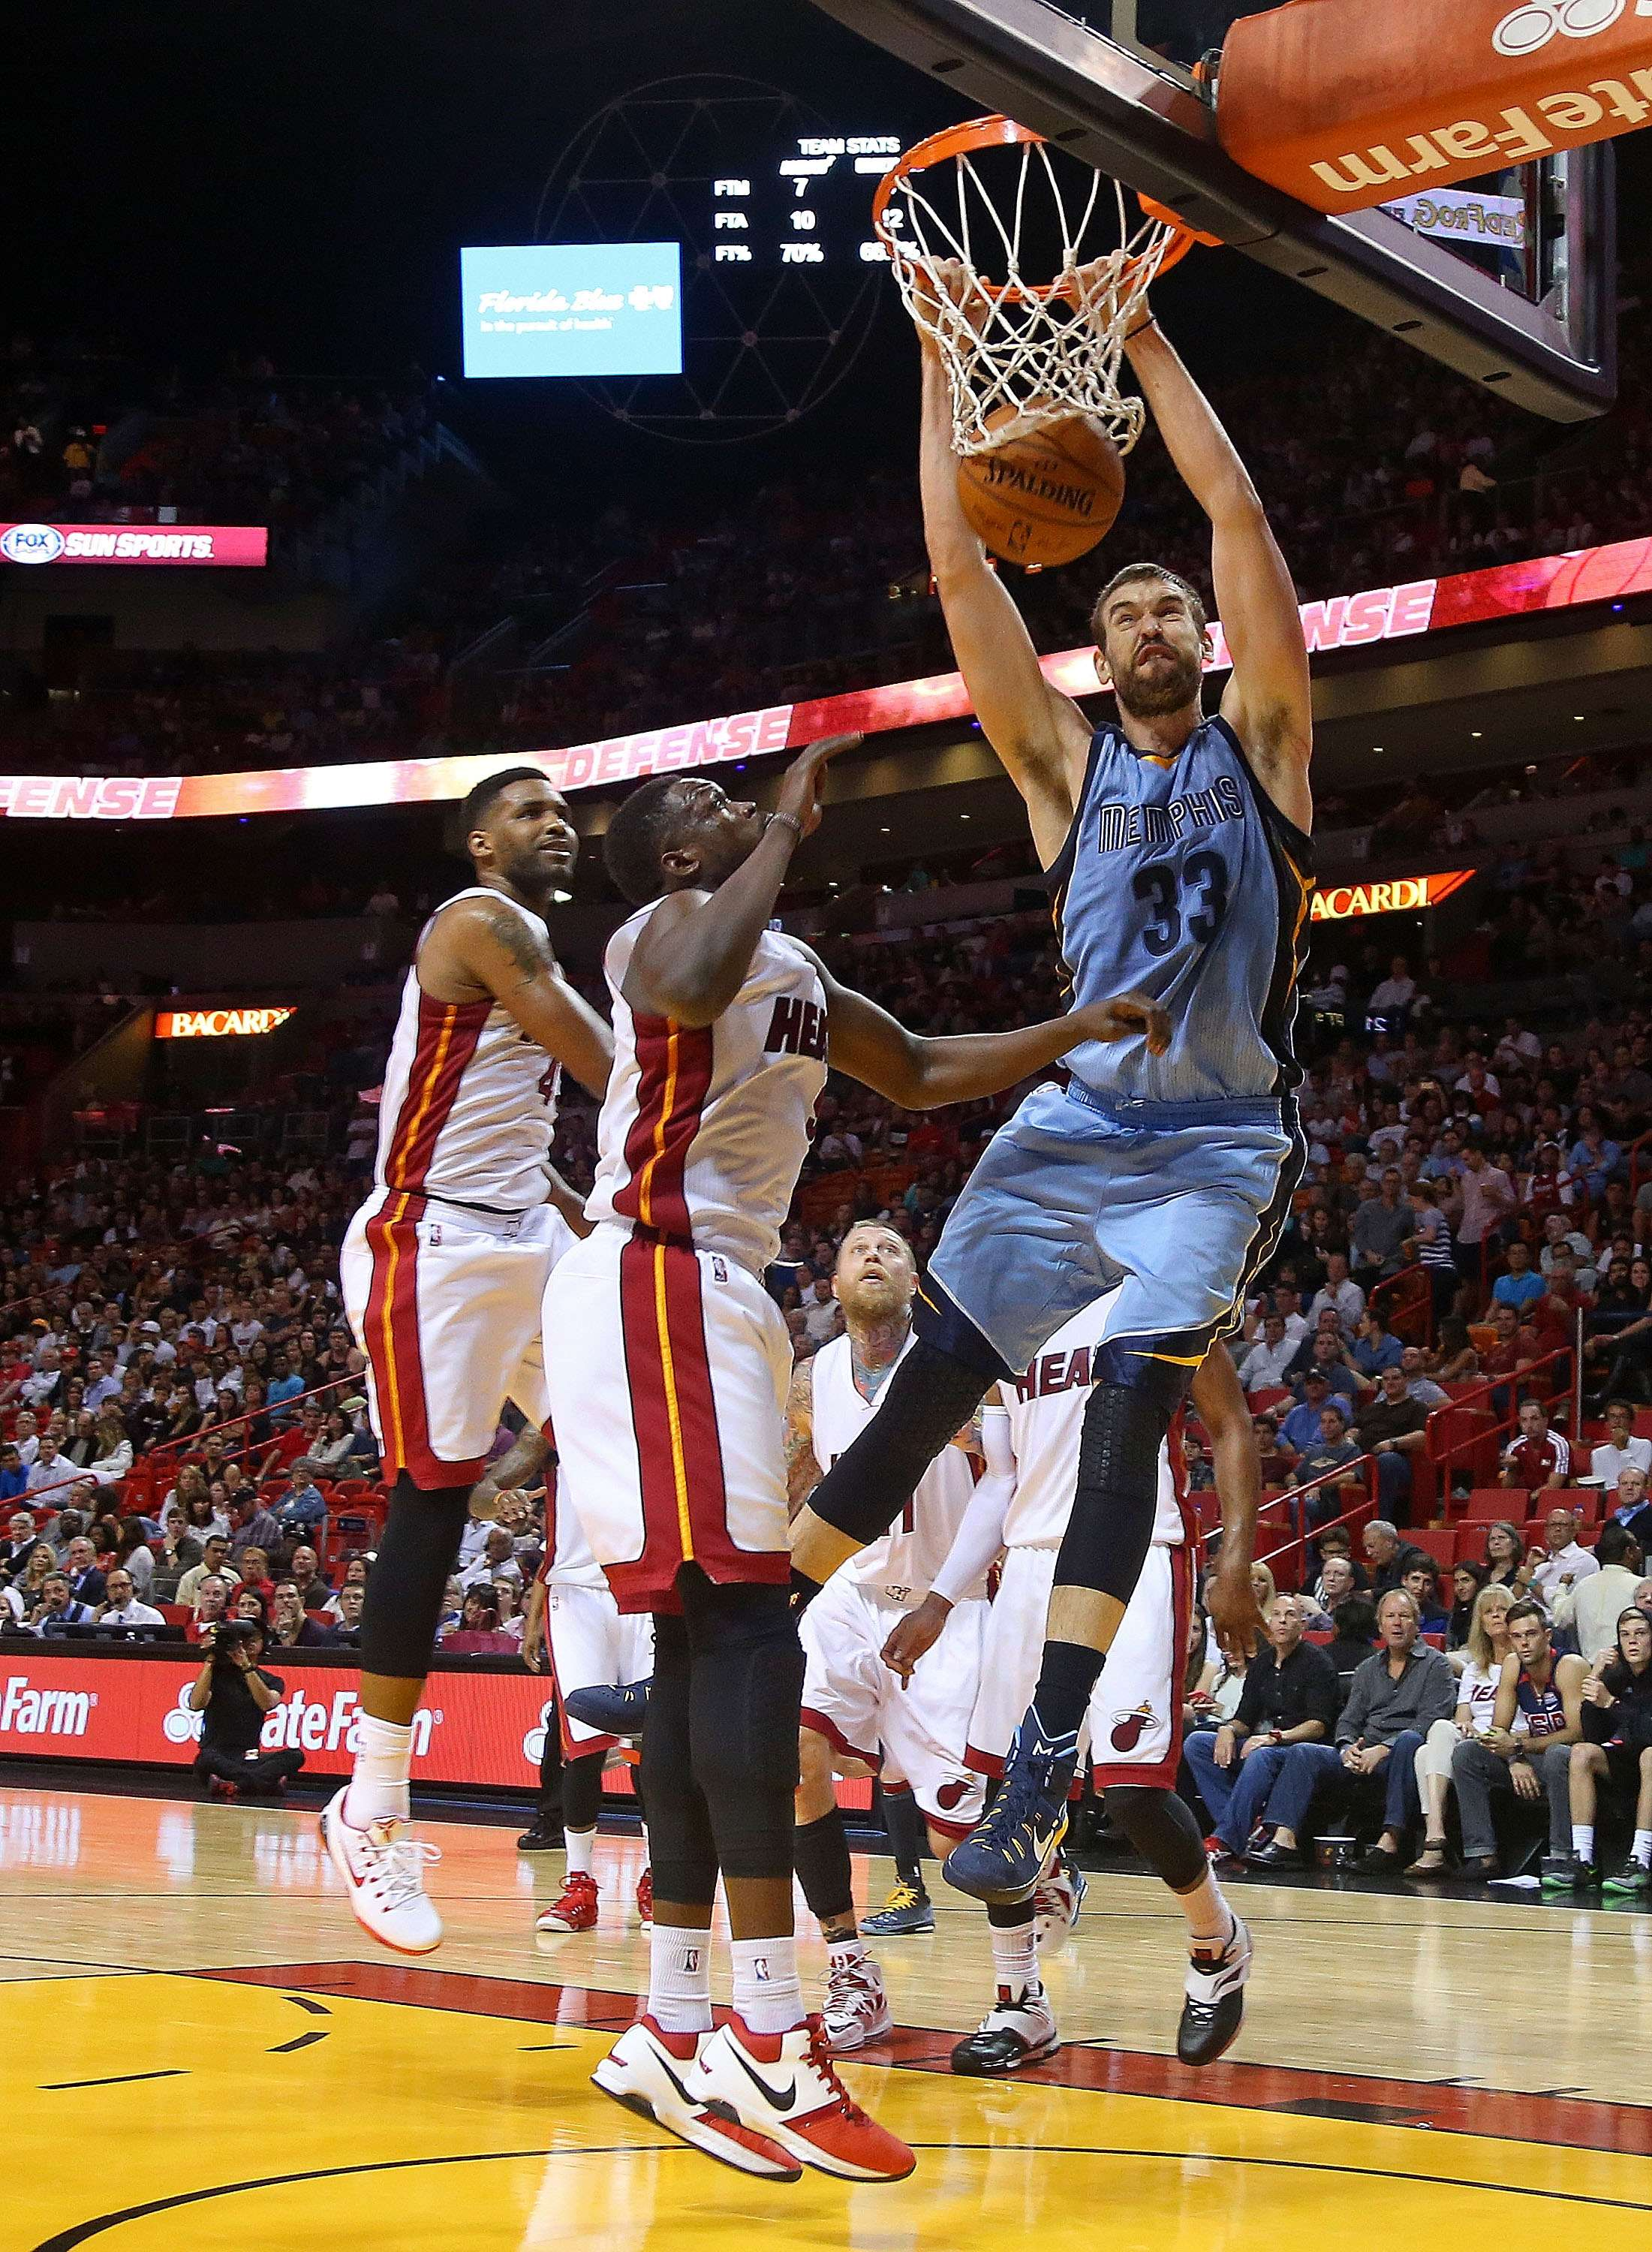 Gasol anotó 22 puntos. Foto: Getty Images